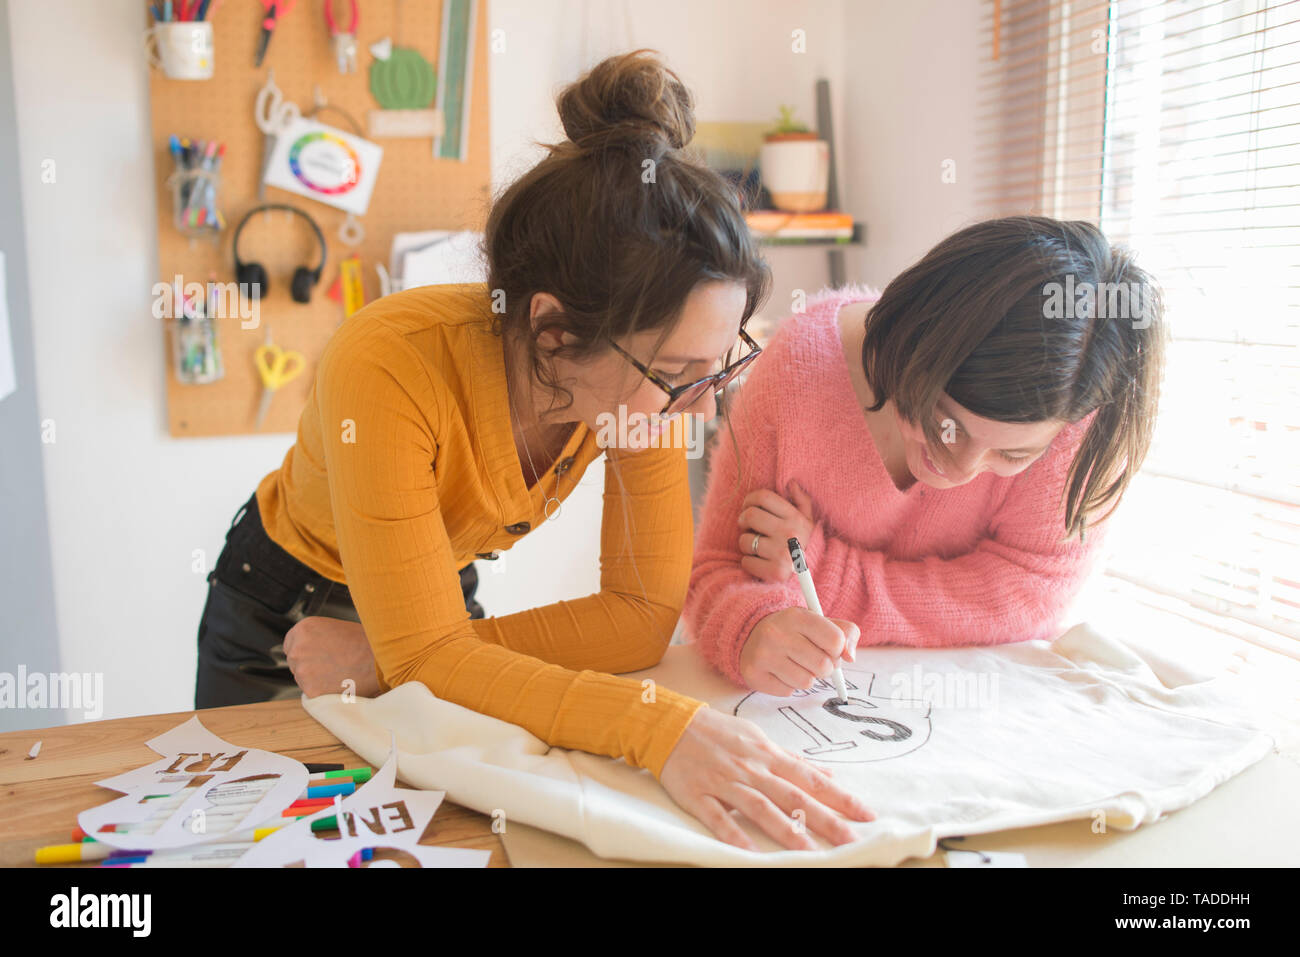 Two women drawing stencils for printing sweatshirts - Stock Image